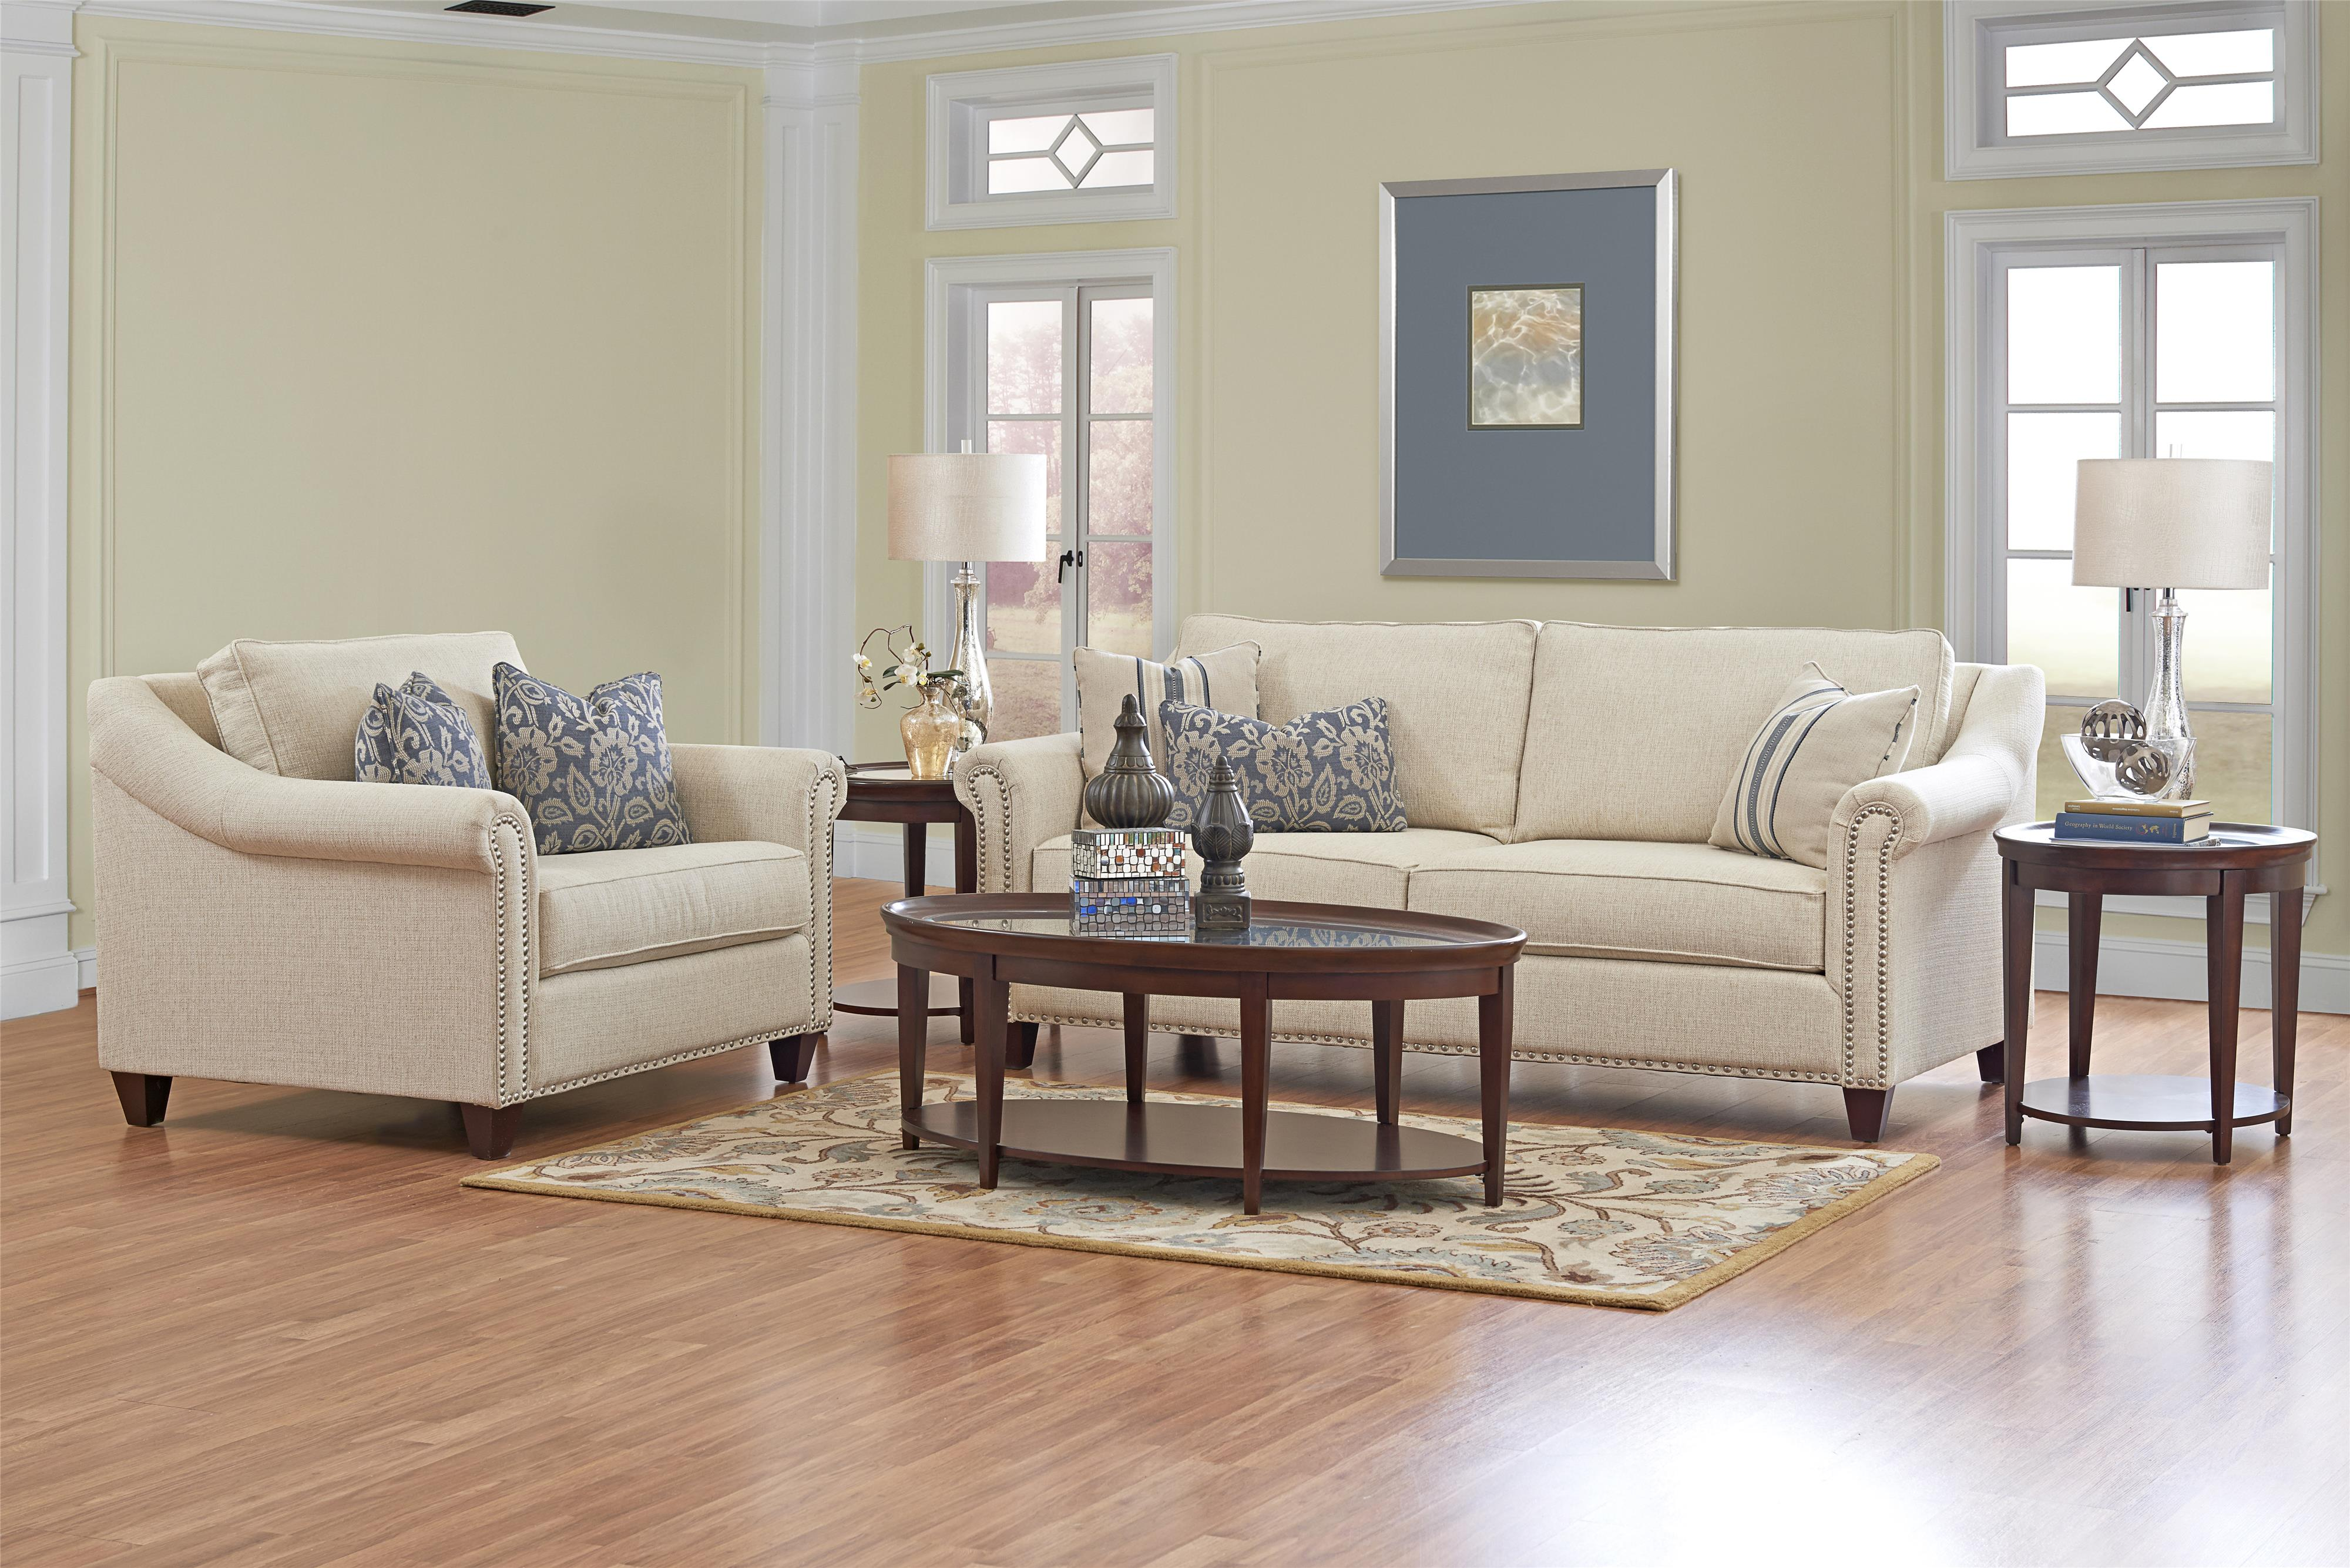 Klaussner Langley Sofa With Nailhead Trim And Toss Pillows Colder 39 S Furniture And Appliance Sofa